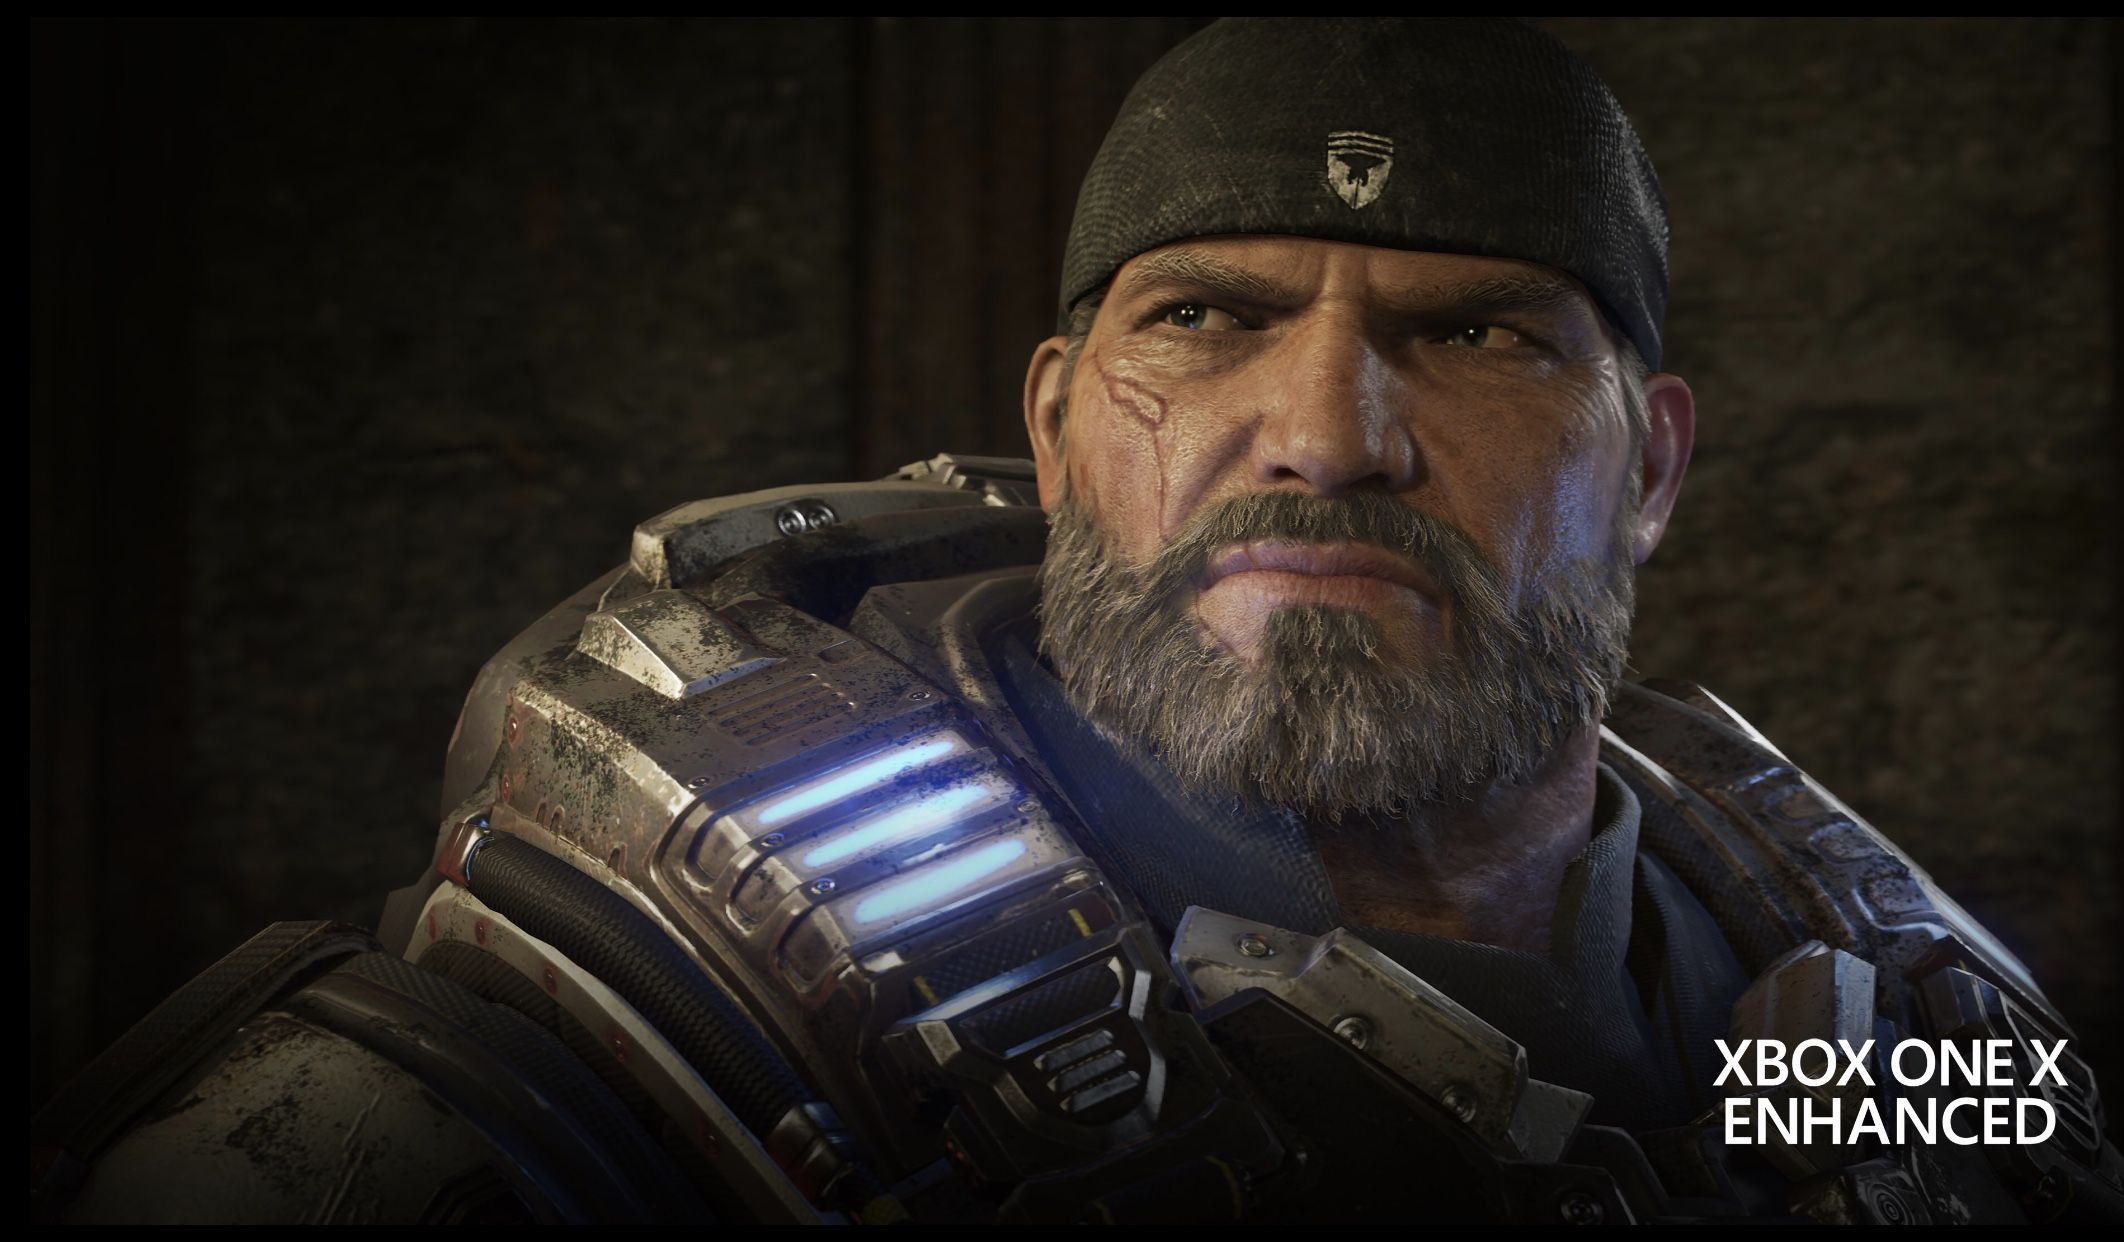 Pin by Prophet of Gaming on Gaming Gears of war, Xbox